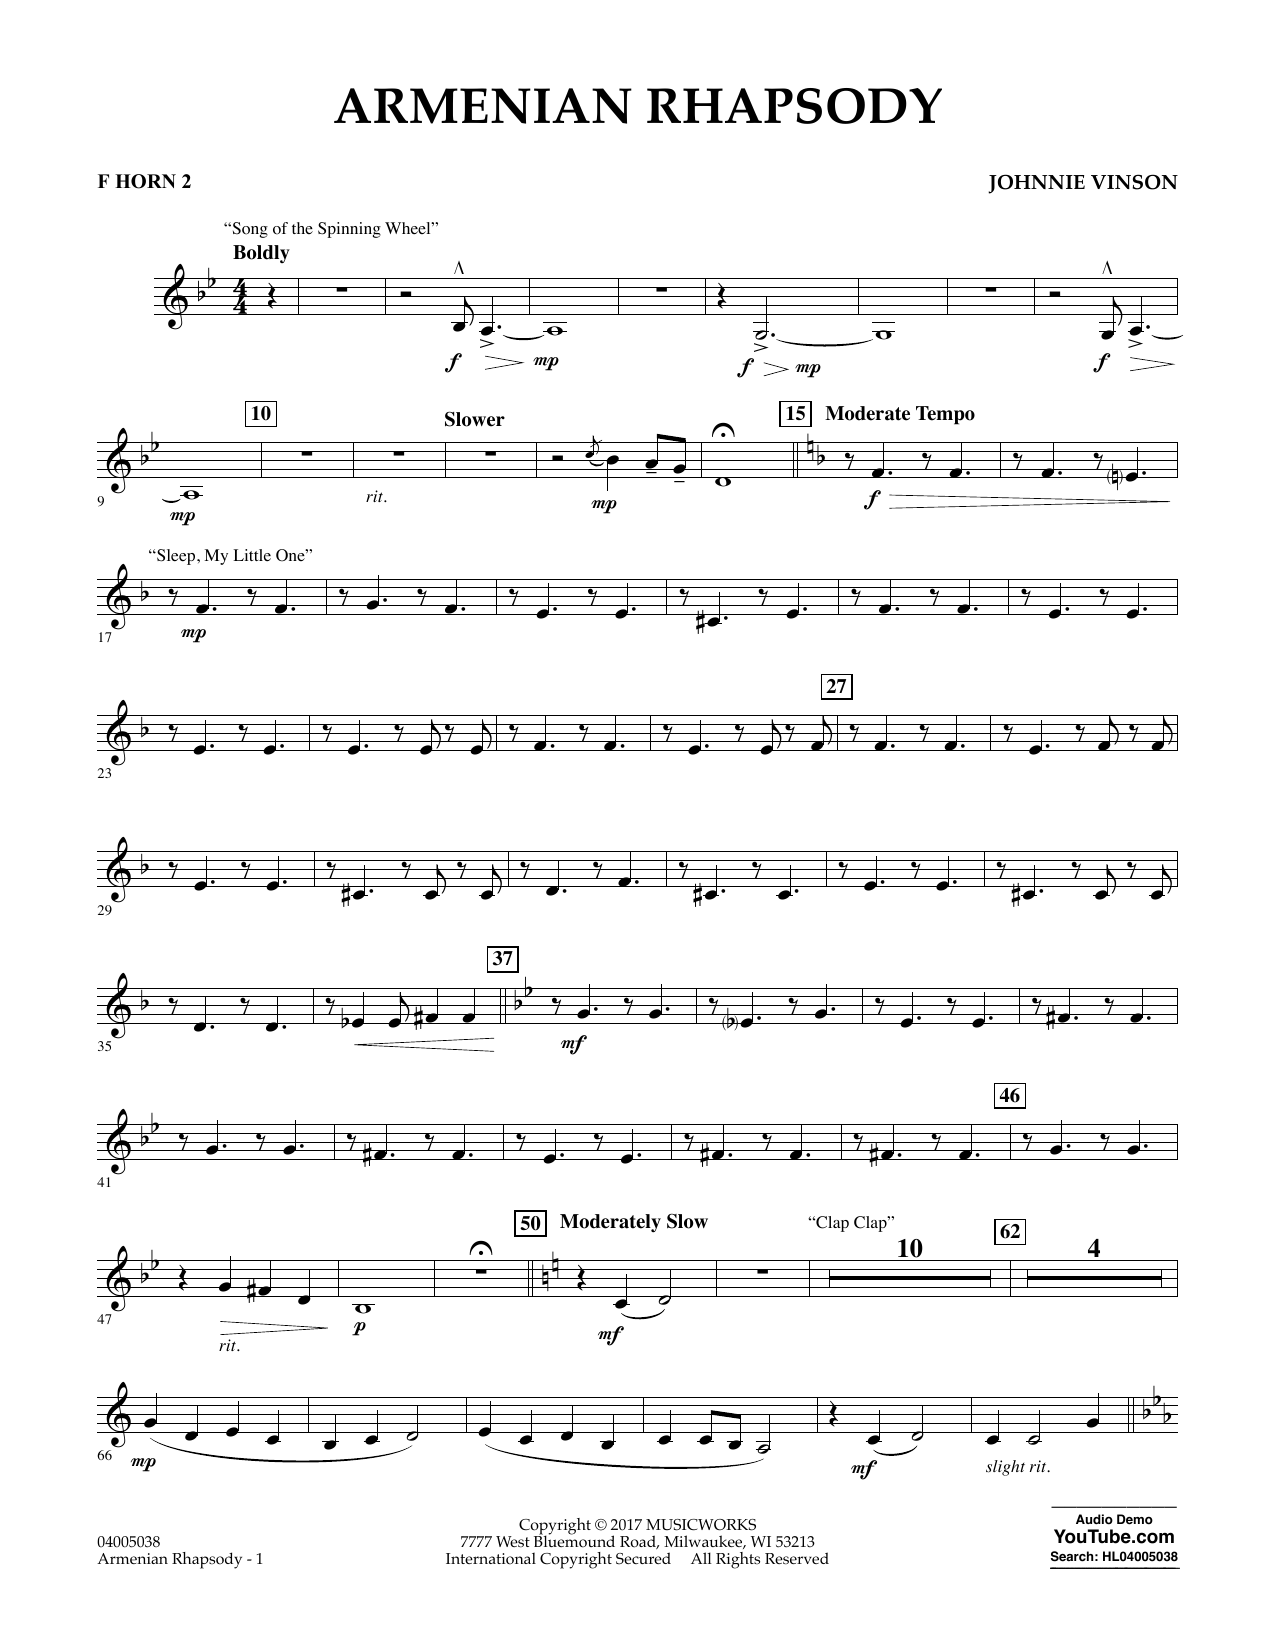 Johnnie Vinson Armenian Rhapsody - F Horn 2 sheet music notes and chords. Download Printable PDF.